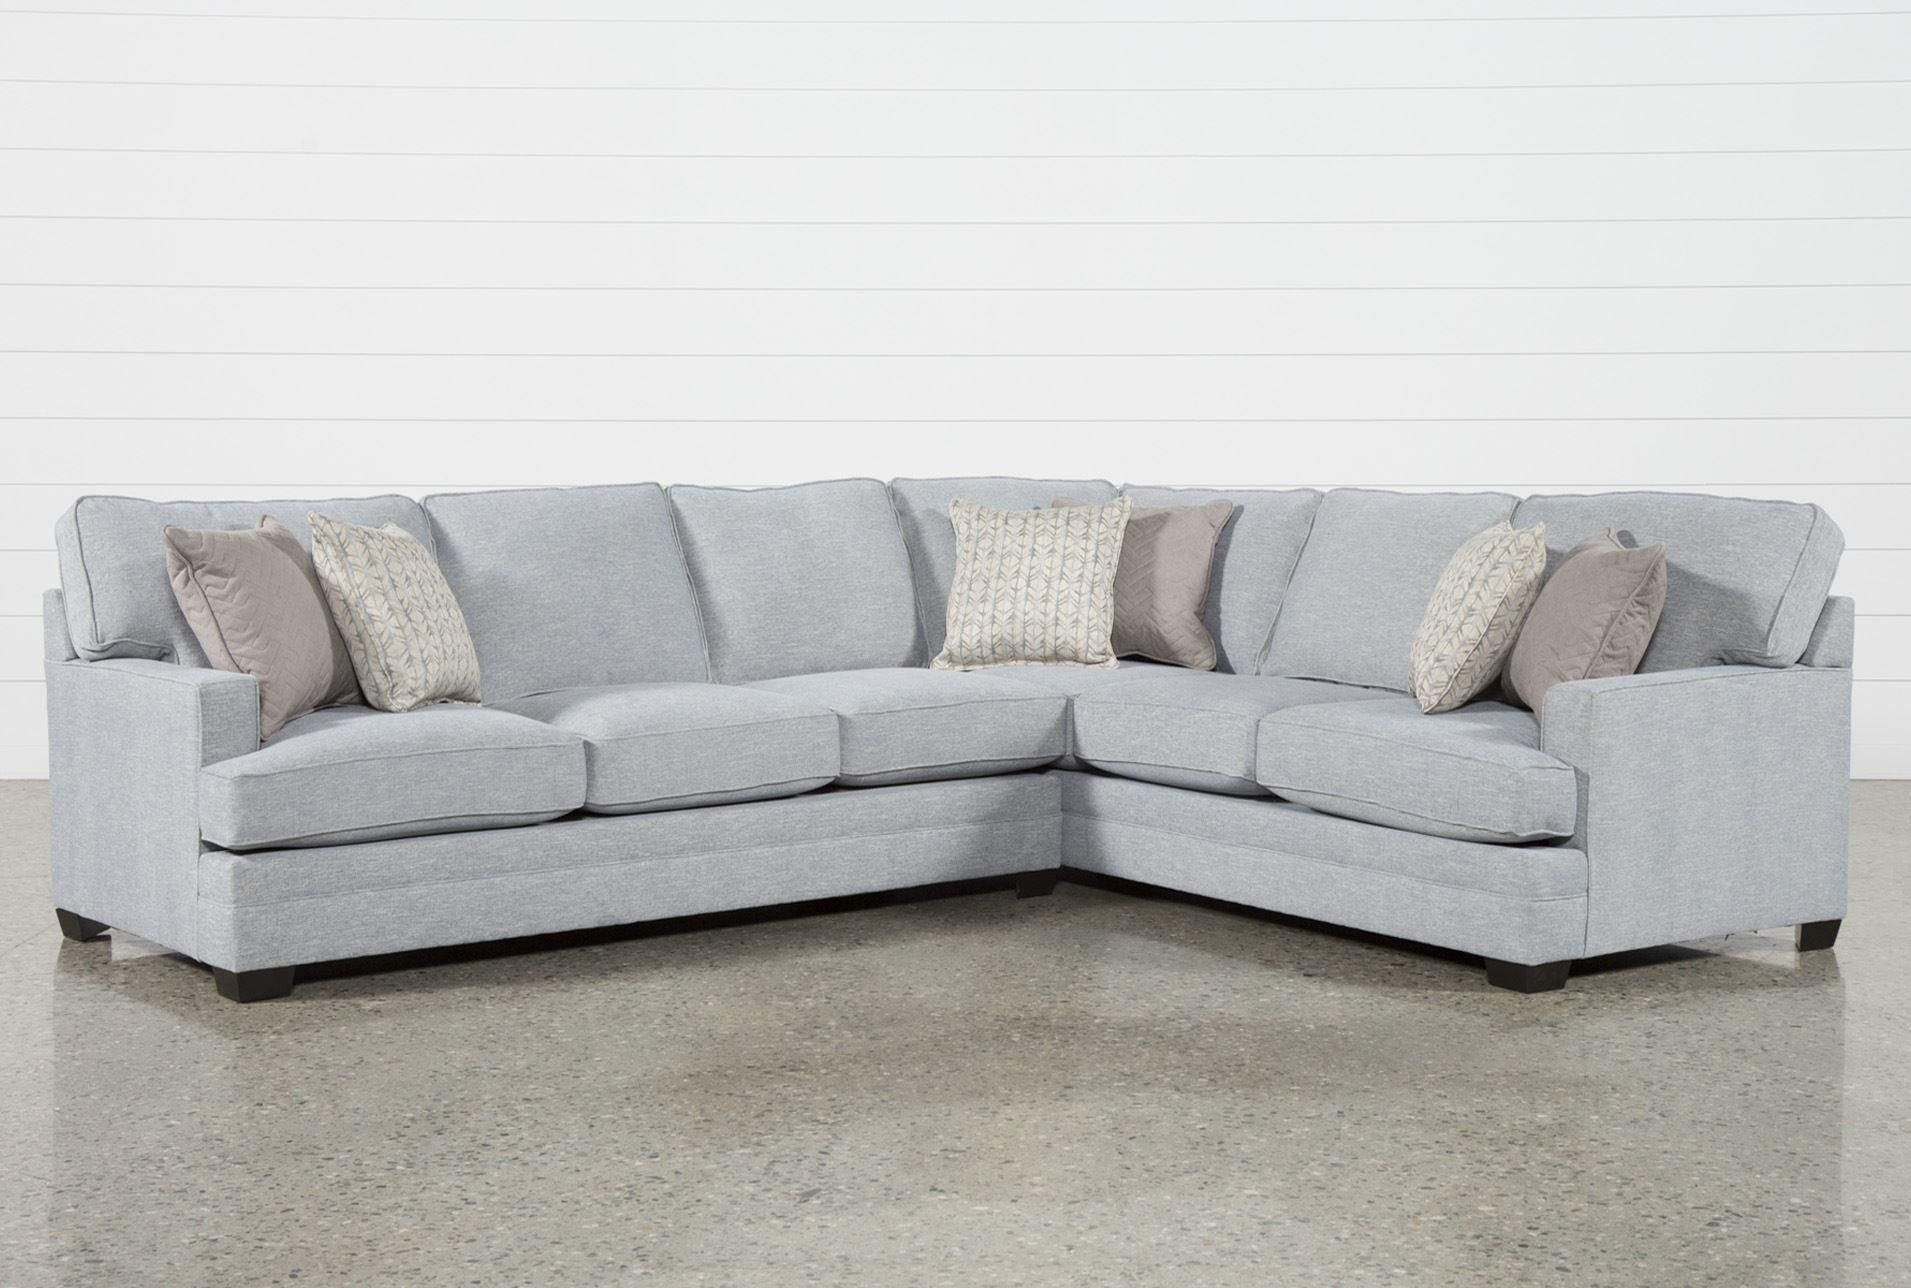 Josephine 2 Piece Sectional W/laf Sofa | For The Home | Pinterest Pertaining To Mesa Foam 2 Piece Sectionals (View 4 of 25)